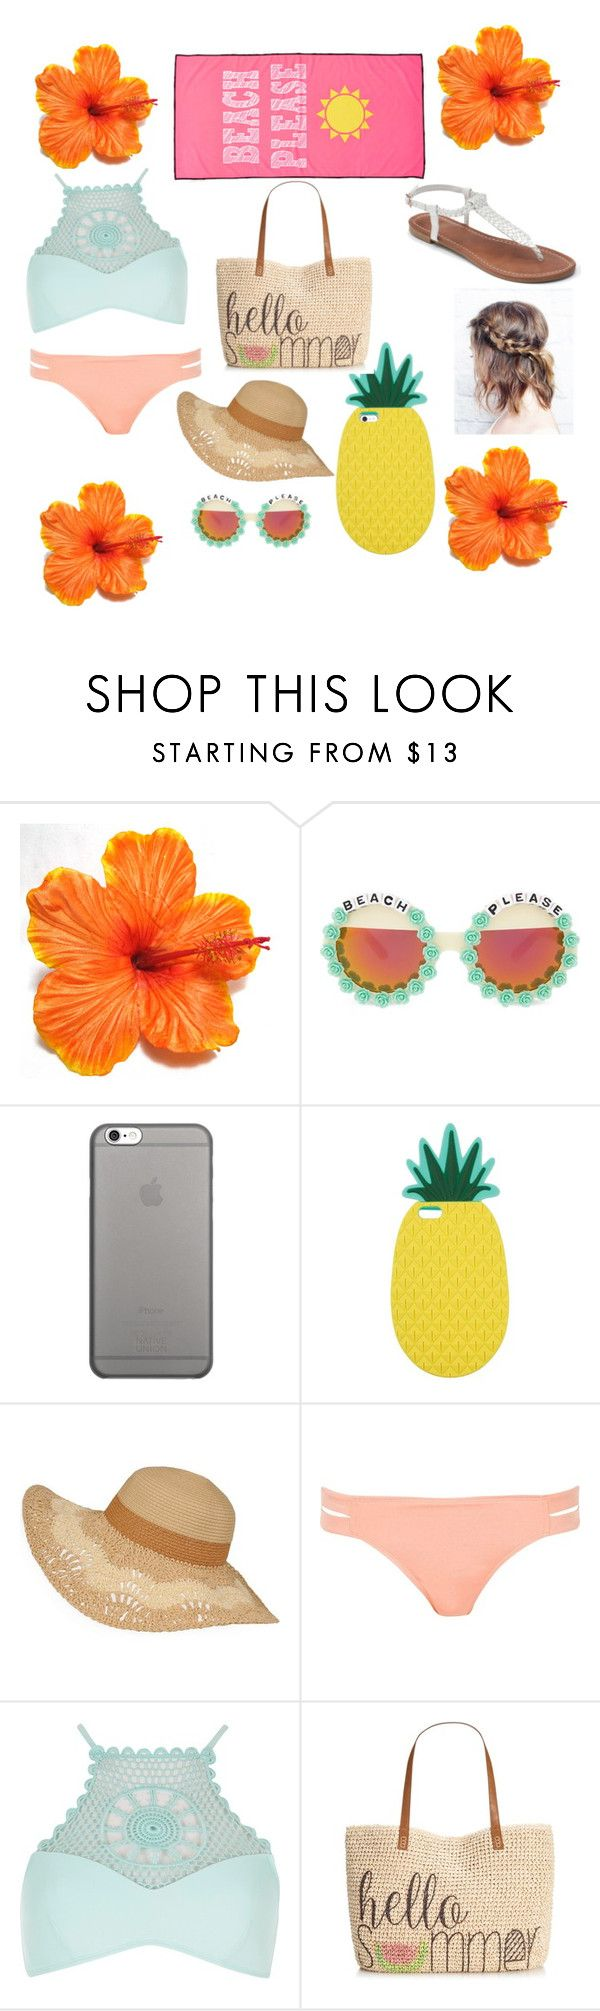 """""""Cute beach outfit"""" by katienstelzer ❤ liked on Polyvore featuring Rad+Refined, Native Union, Miss Selfridge, River Island, Style & Co. and Apt. 9"""